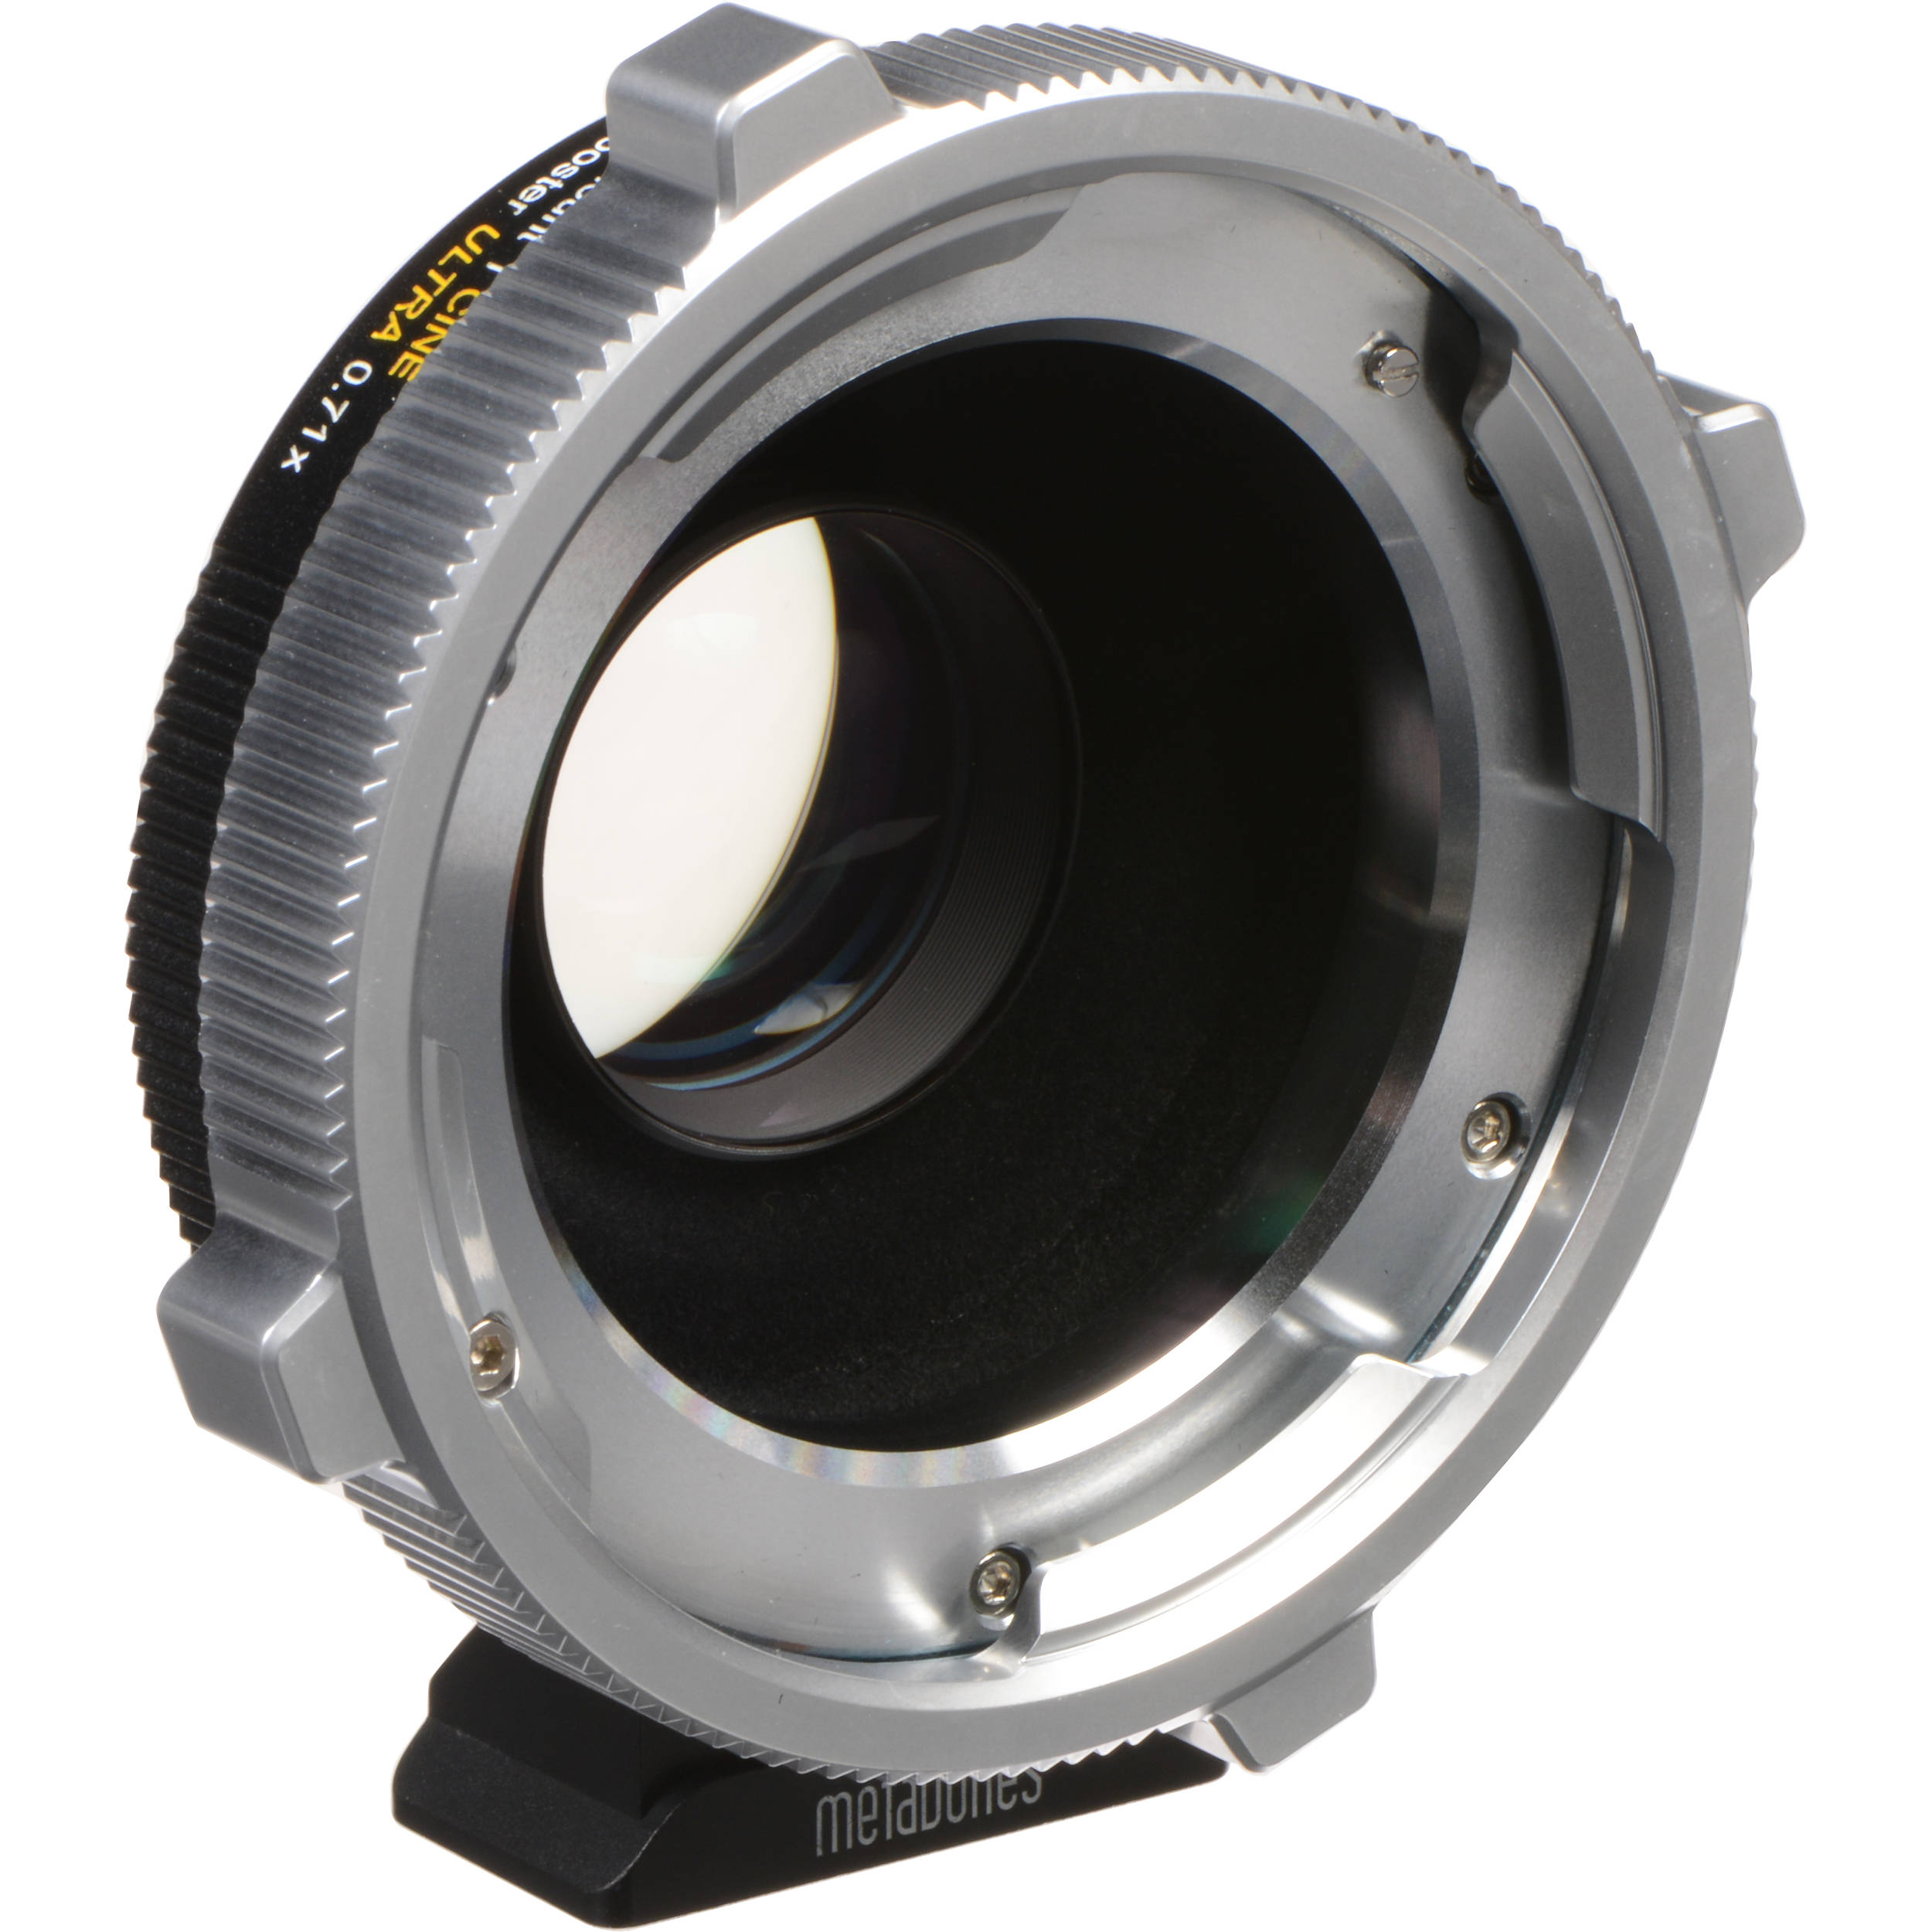 Metabones Speed Booster Ultra 0 71x Adapter for Select PL Lenses to Micro  Four Thirds Camera